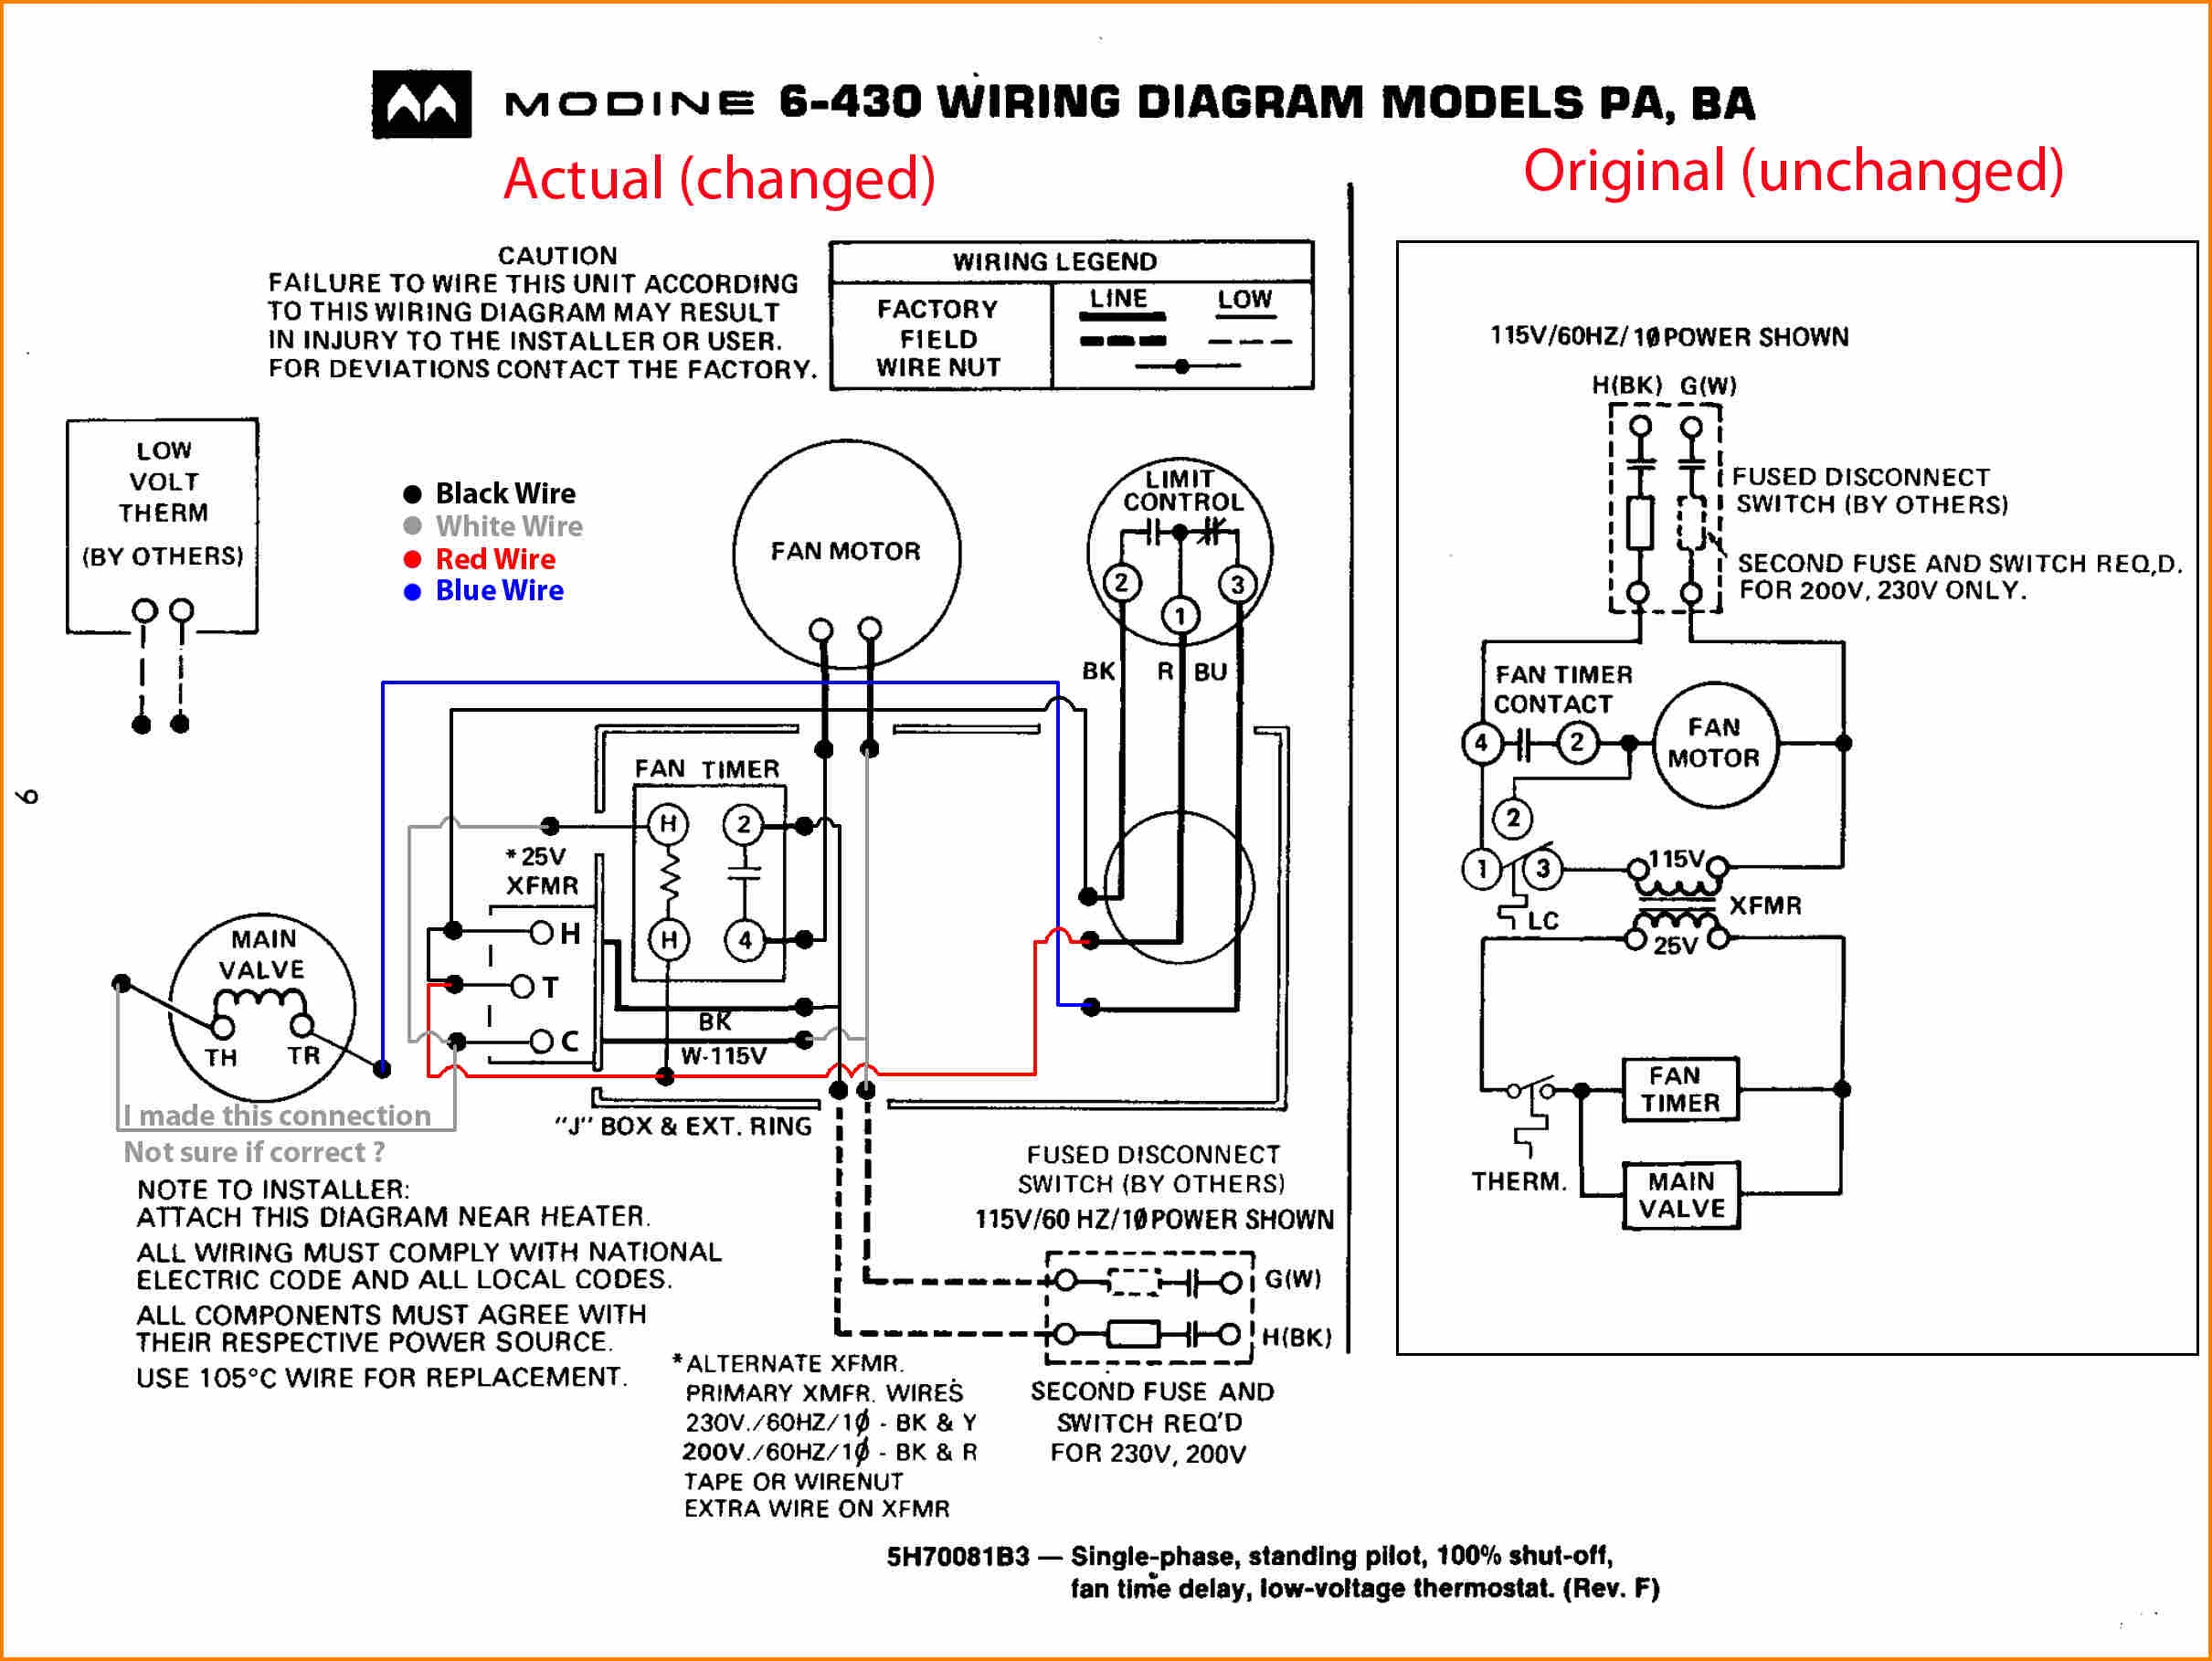 Fan Center Wiring Diagram | Wiring Diagram on